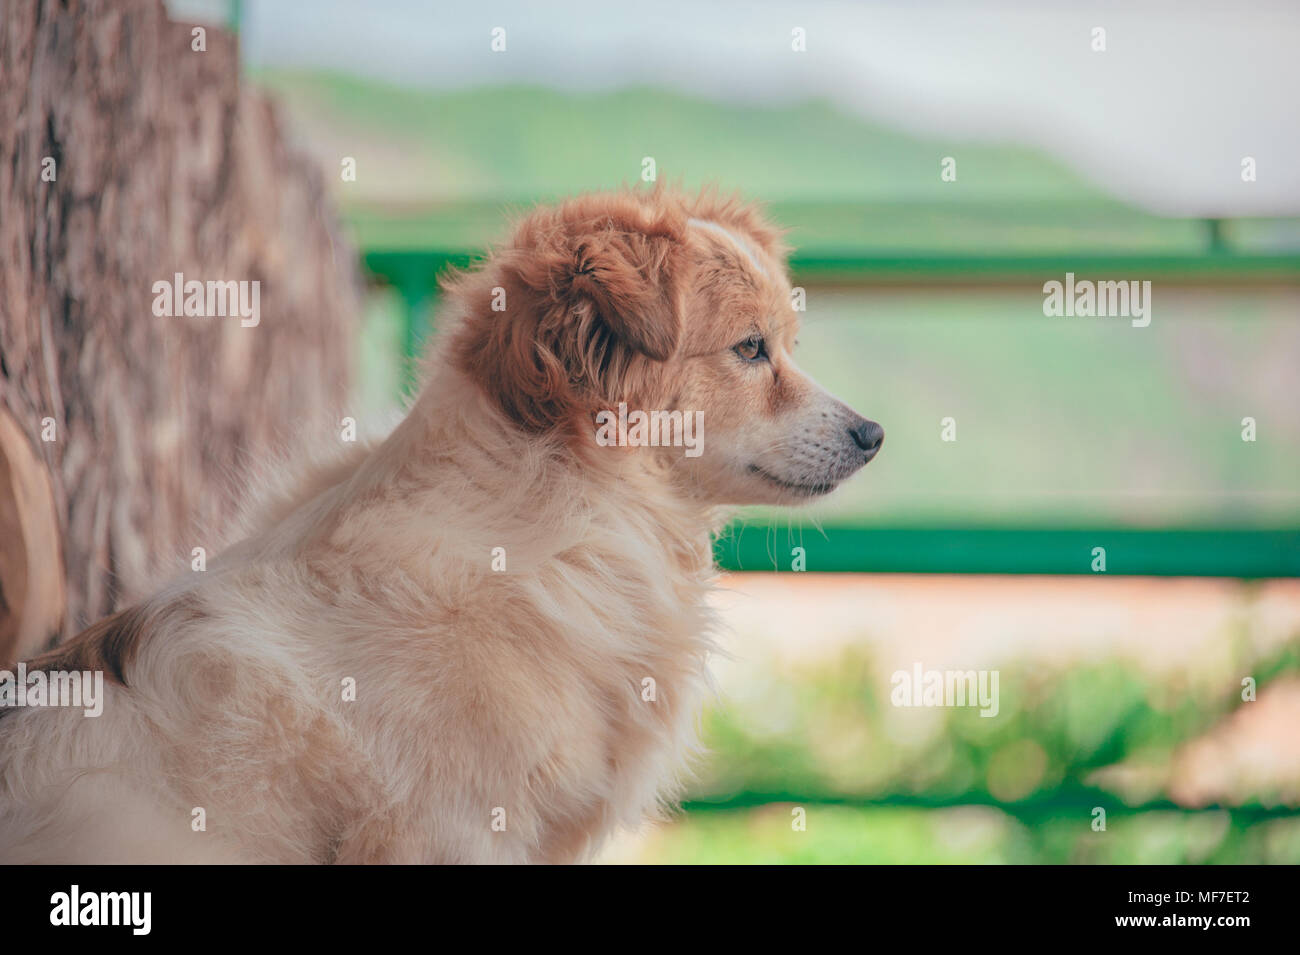 adorable and beautiful images of cute dogs - Stock Image